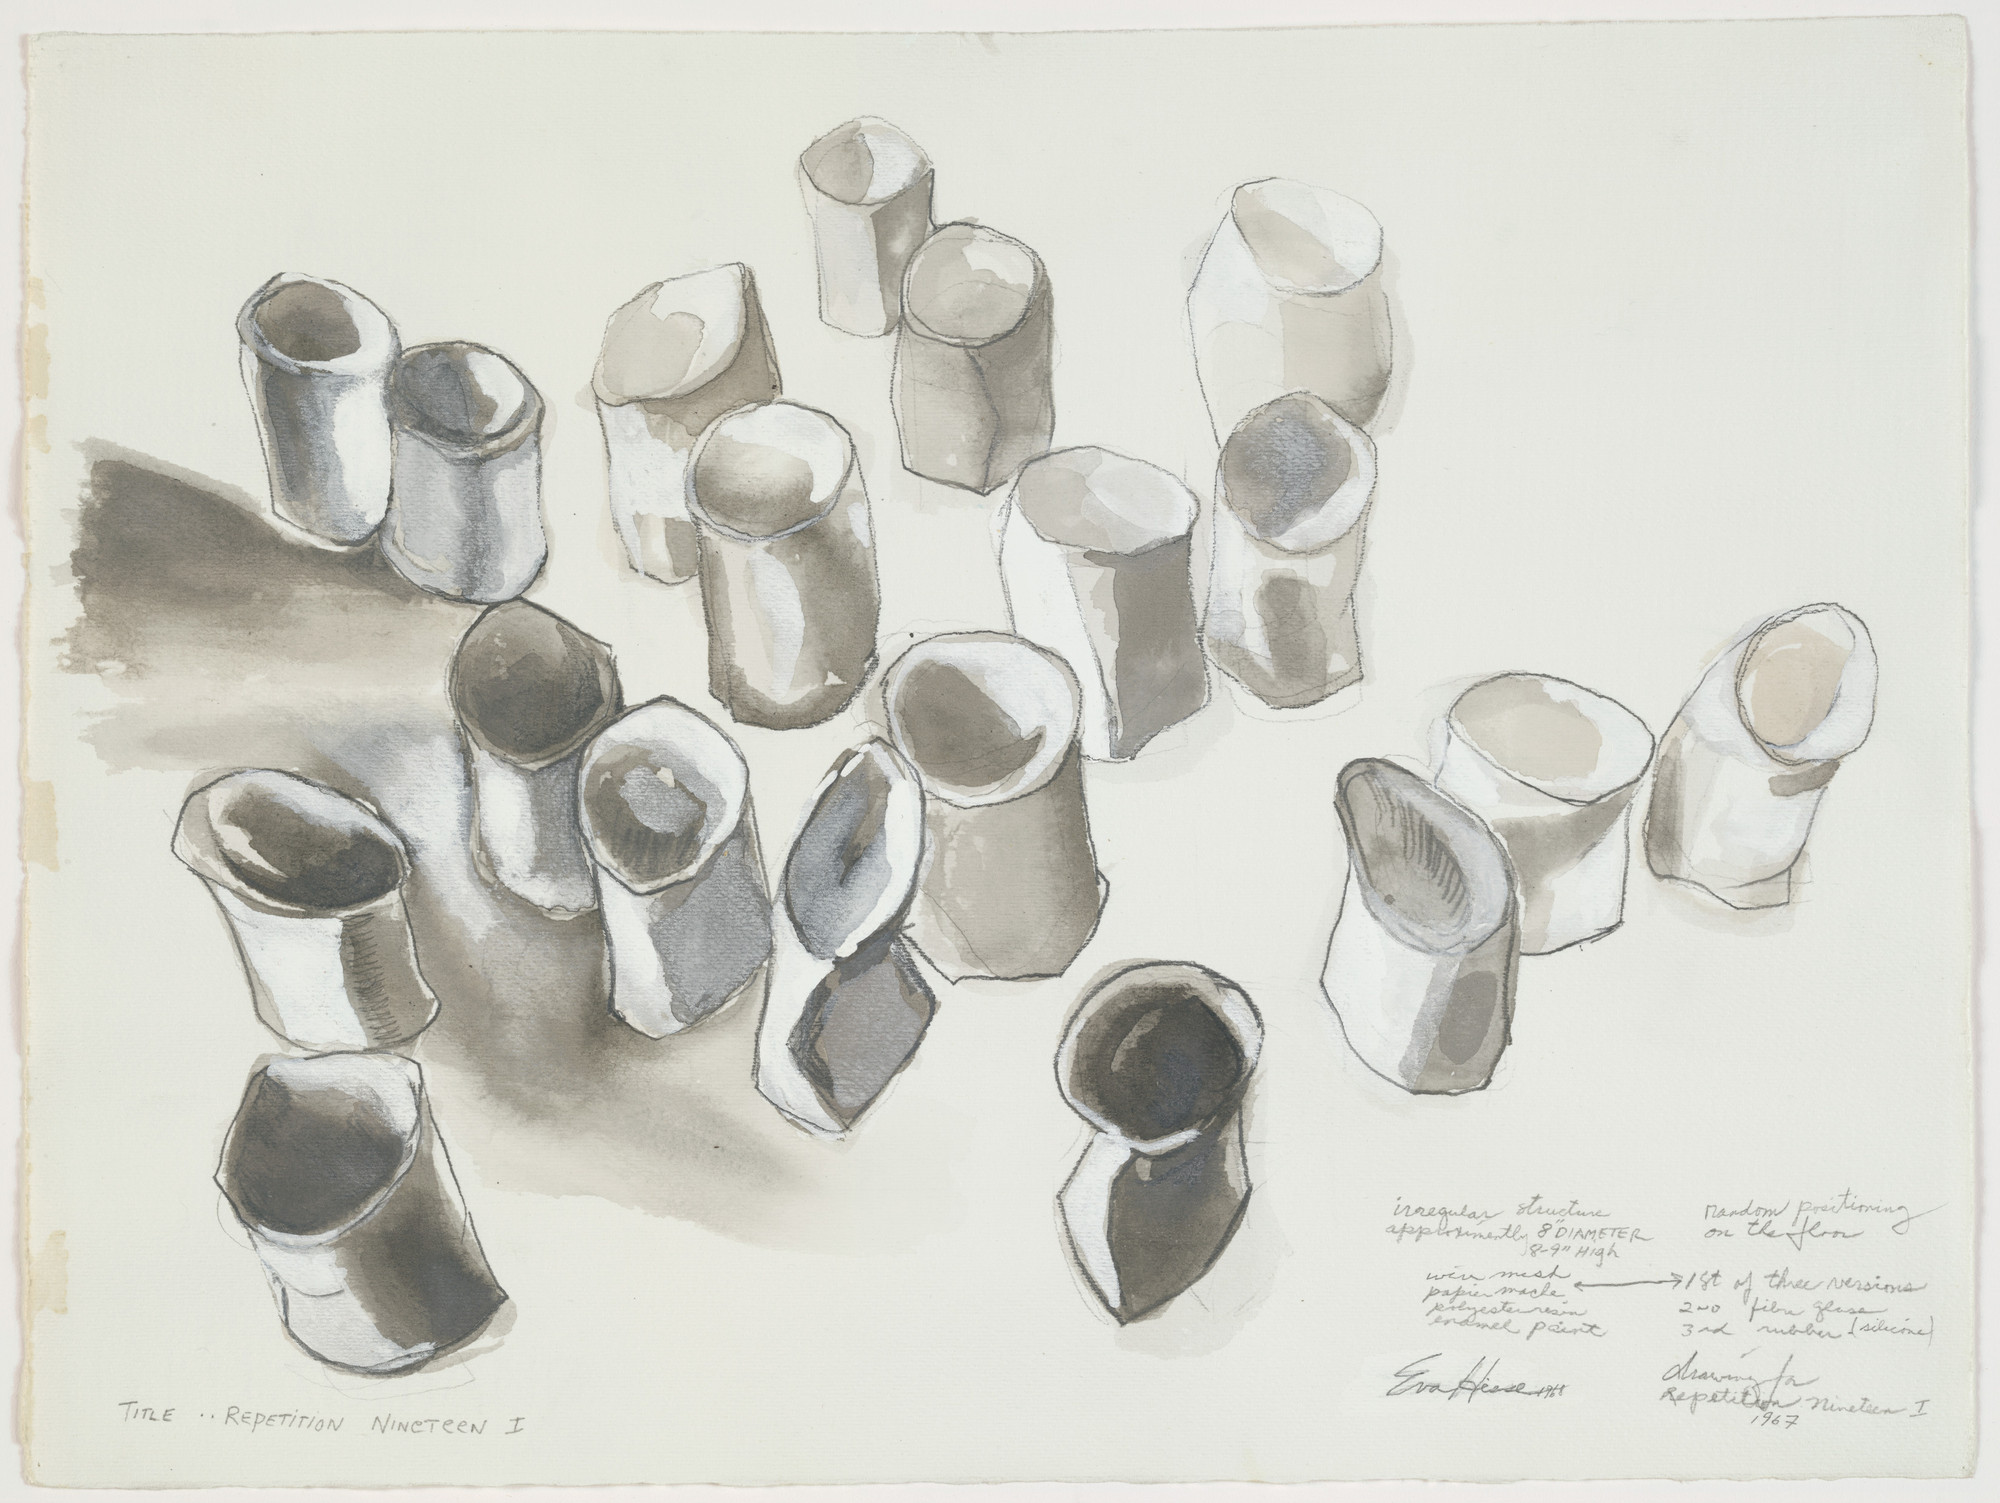 Eva Hesse. Repetition Nineteen I. 1967–68